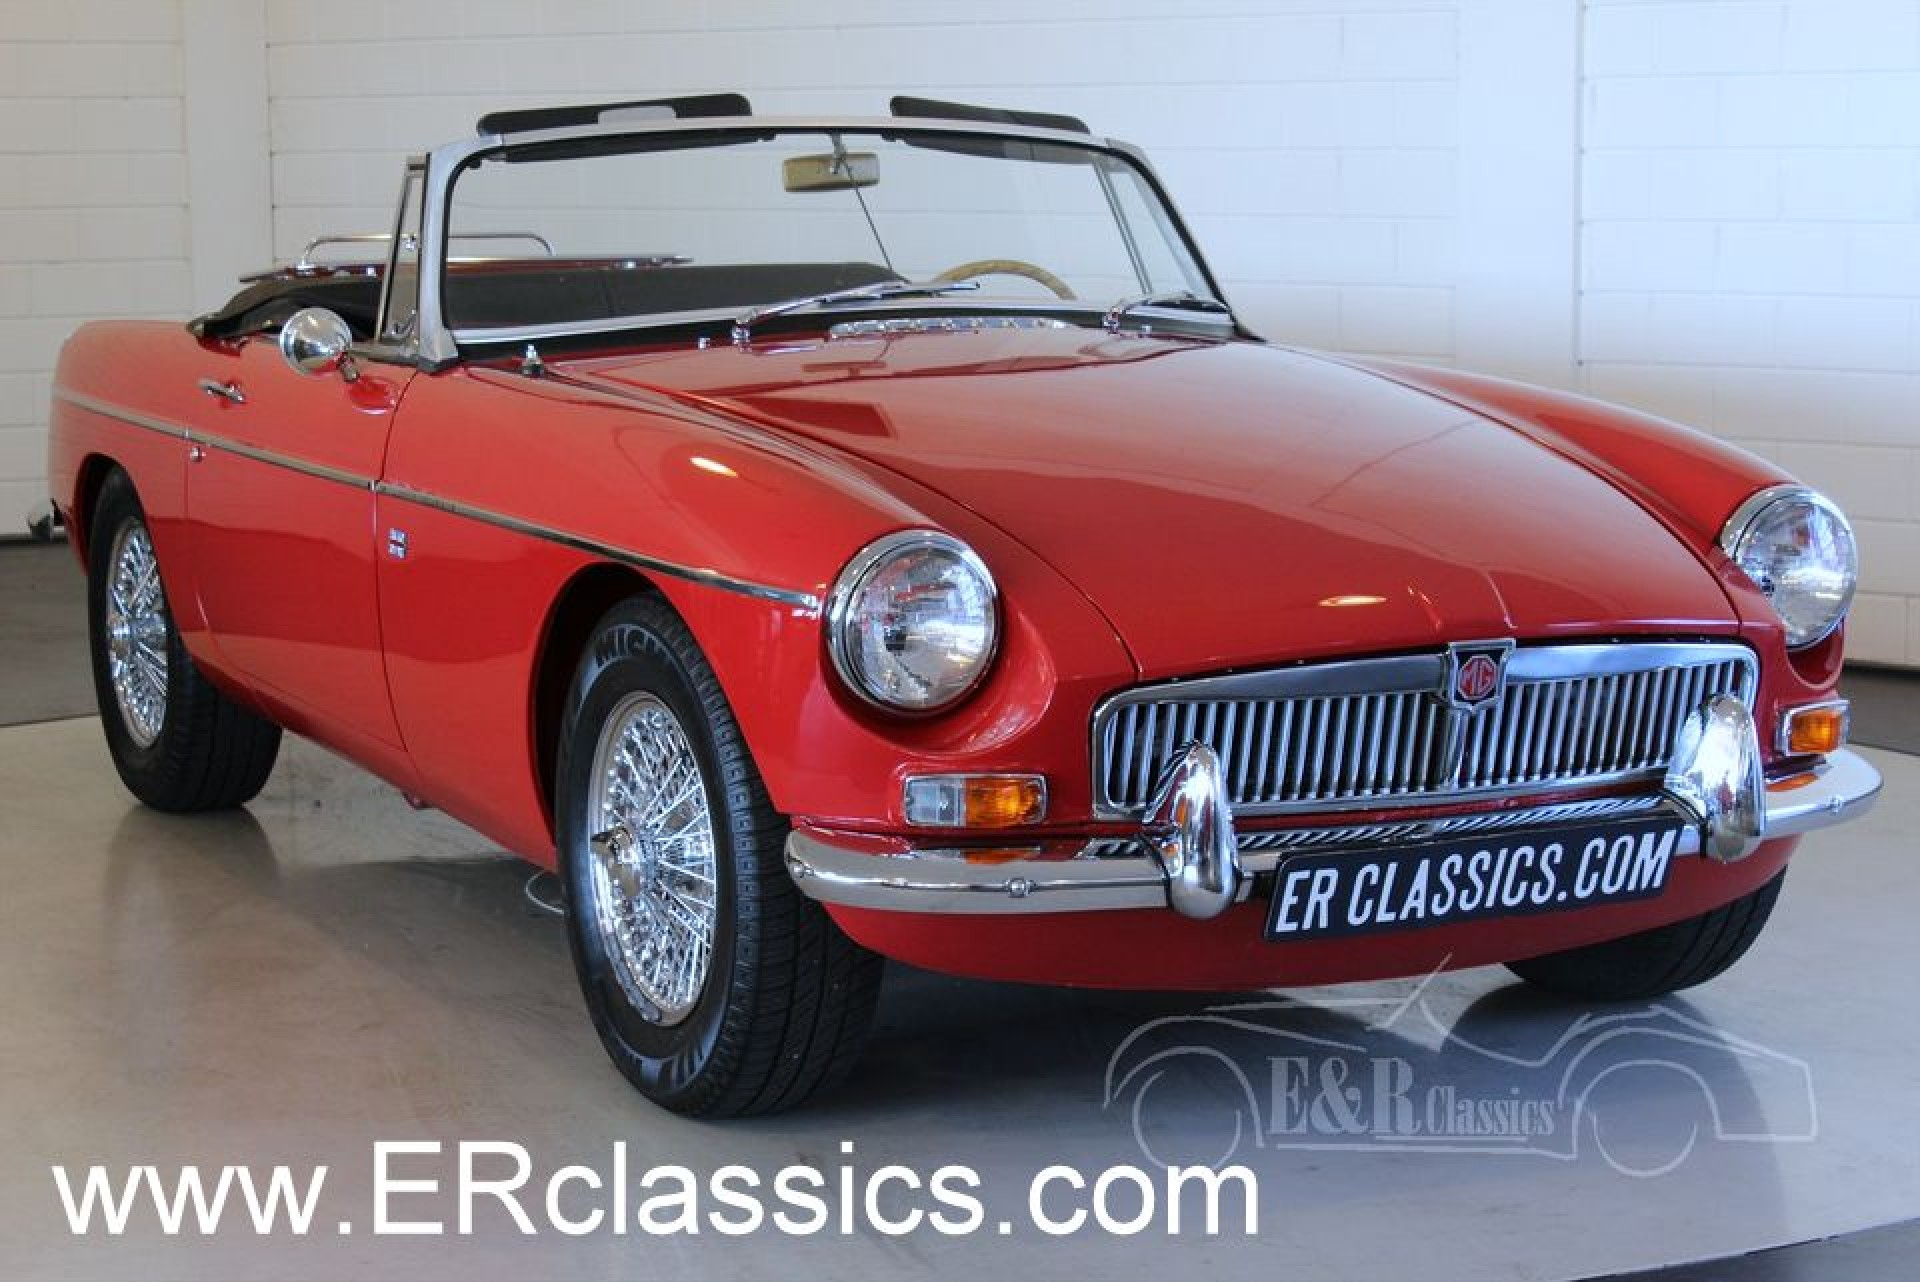 Mgb 1964 For Sale At Erclassics